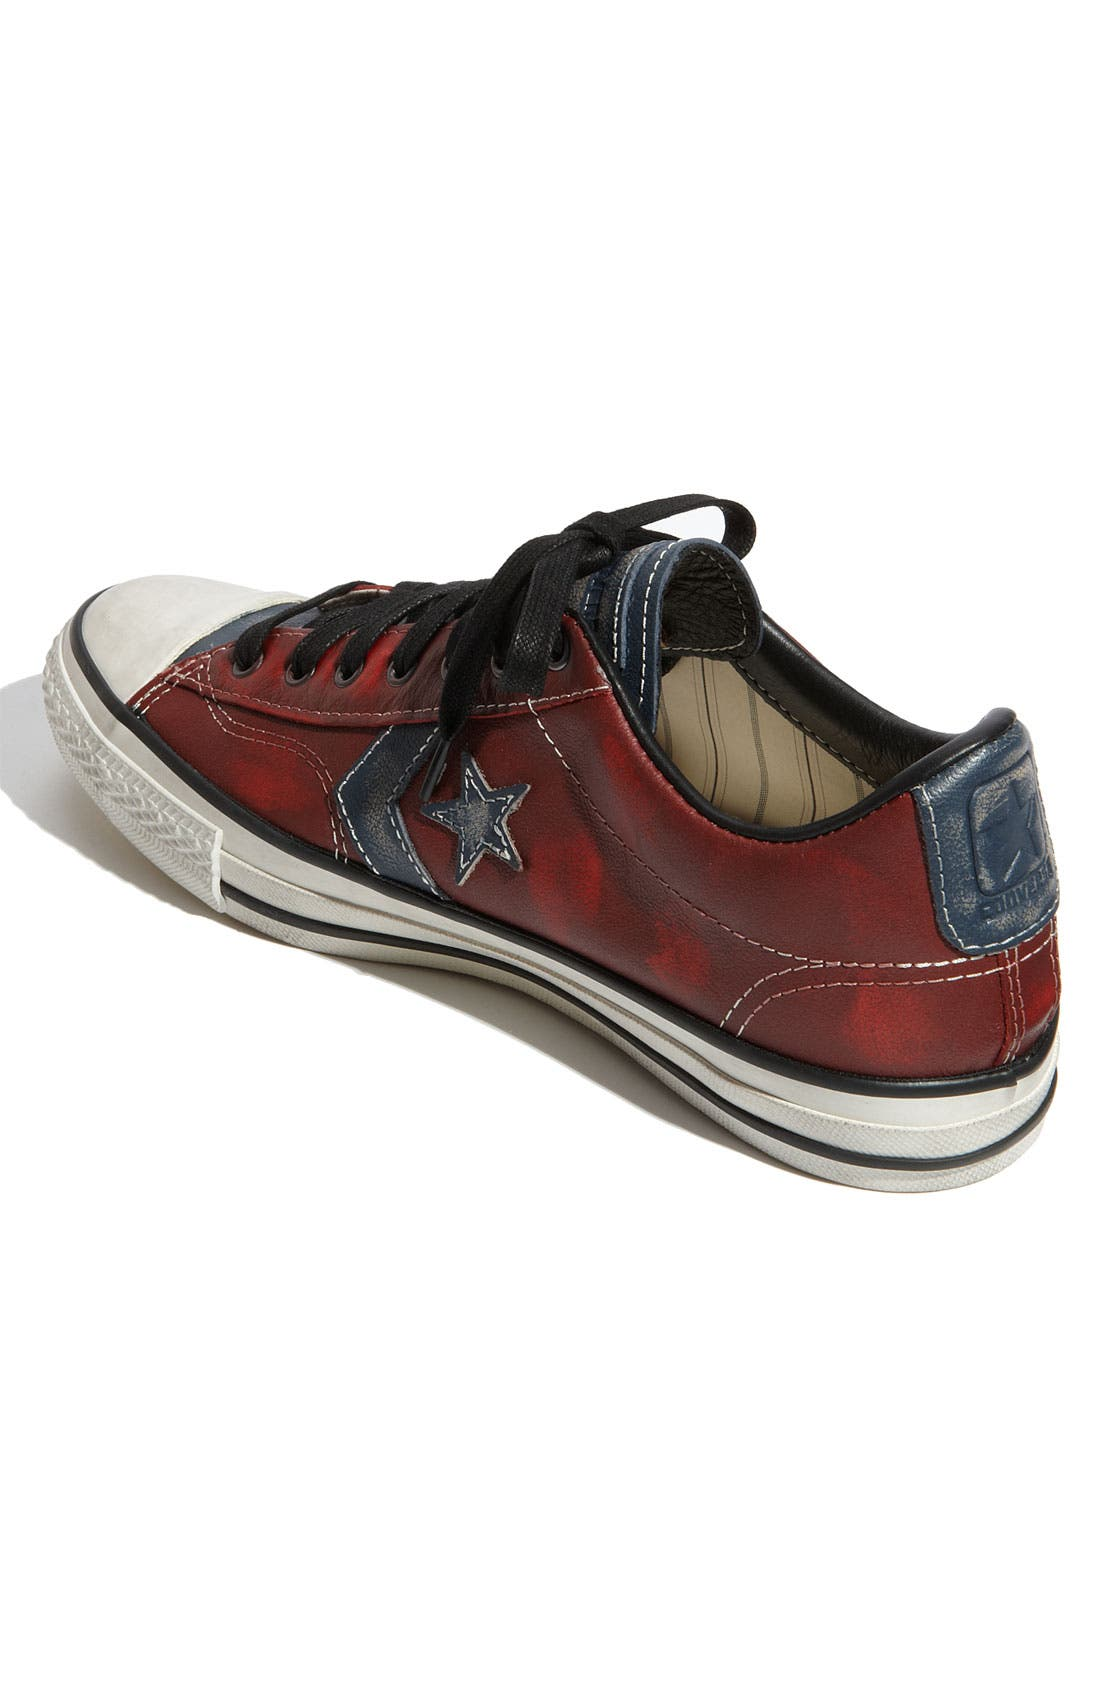 'Star Player' Leather Sneaker,                             Alternate thumbnail 4, color,                             Red / Blue